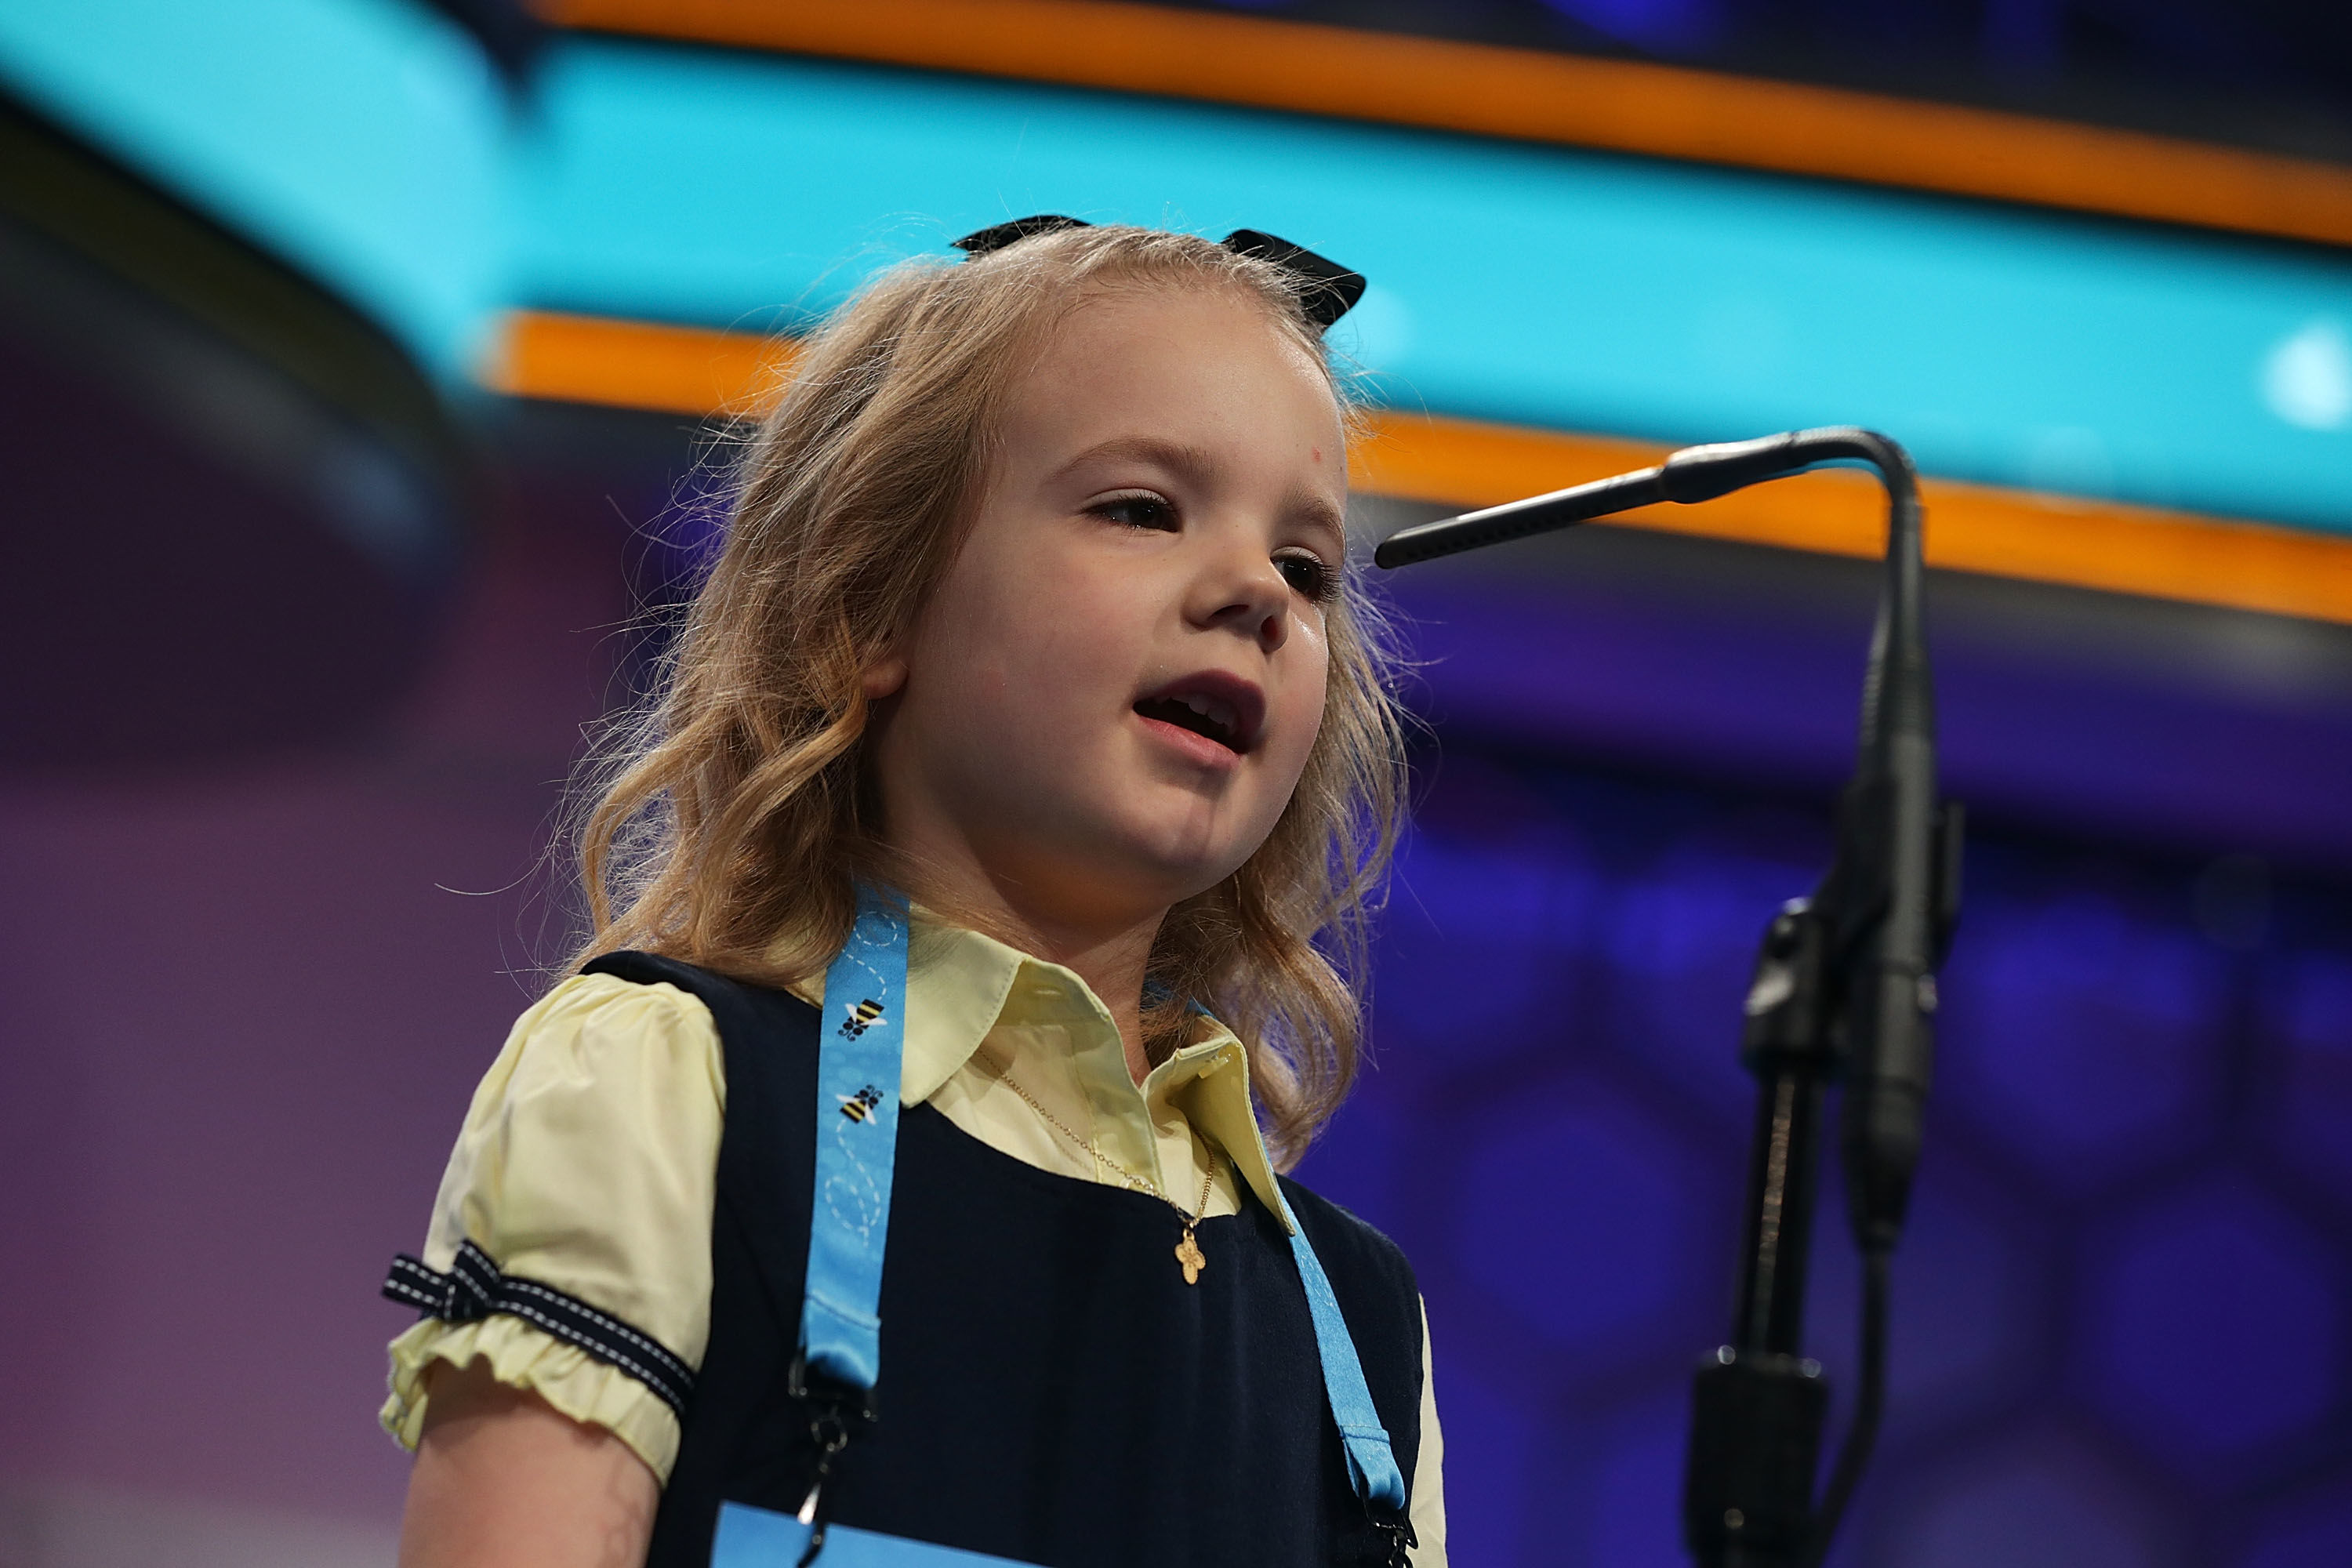 Adorable 6-Year-Old From Oklahoma is The Youngest Contestant to Compete in the National Spelling Bee